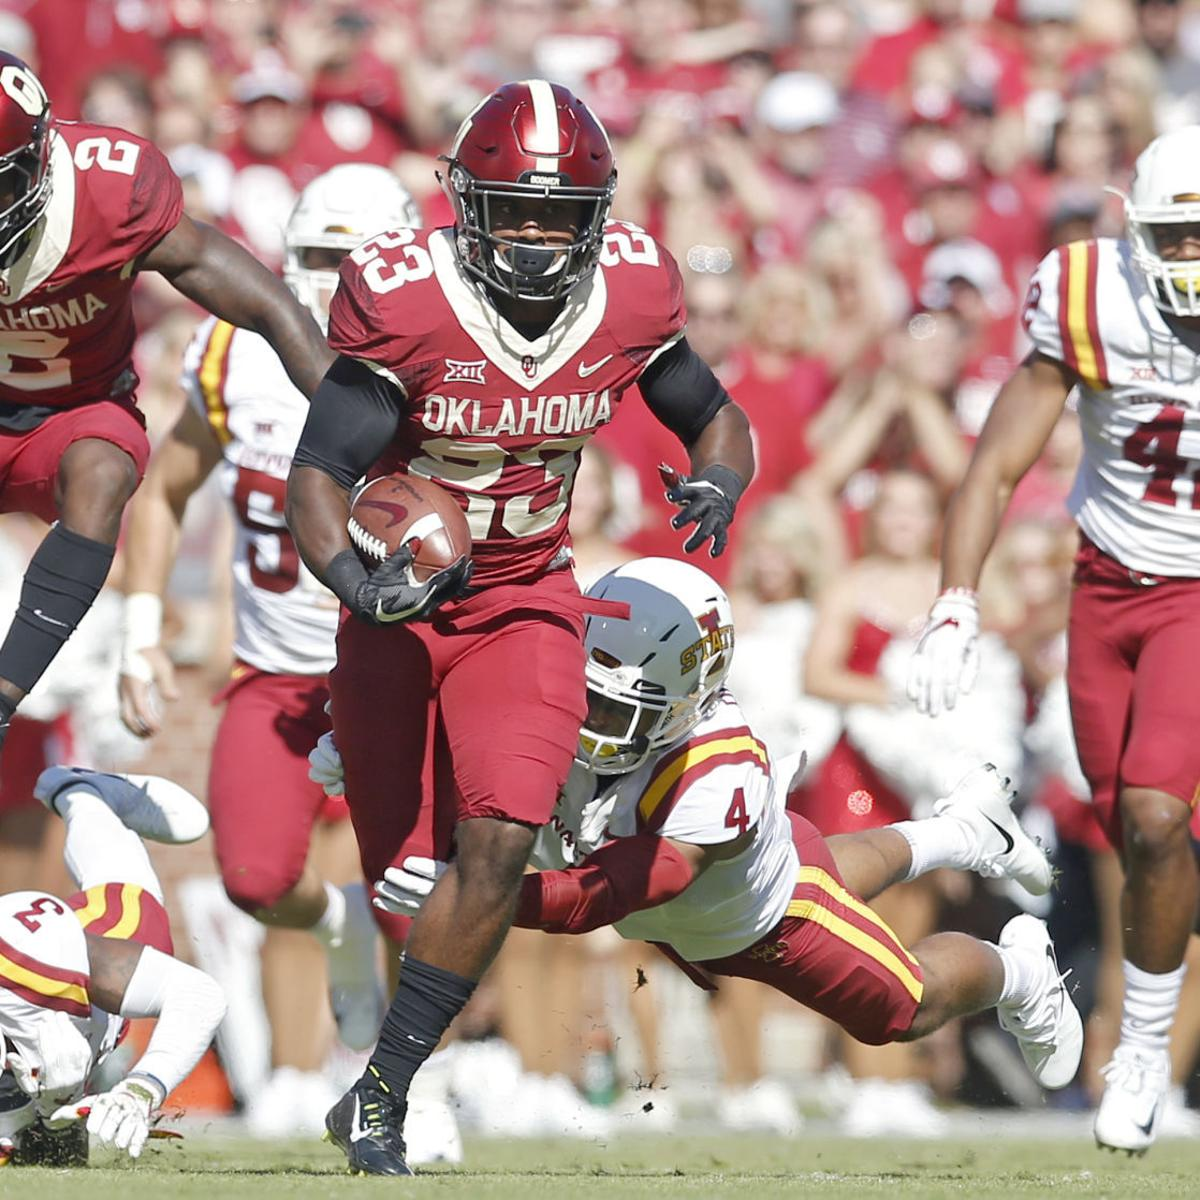 newest 5a484 ffd29 OU notebook: Sooners going with alternate uniform Saturday ...